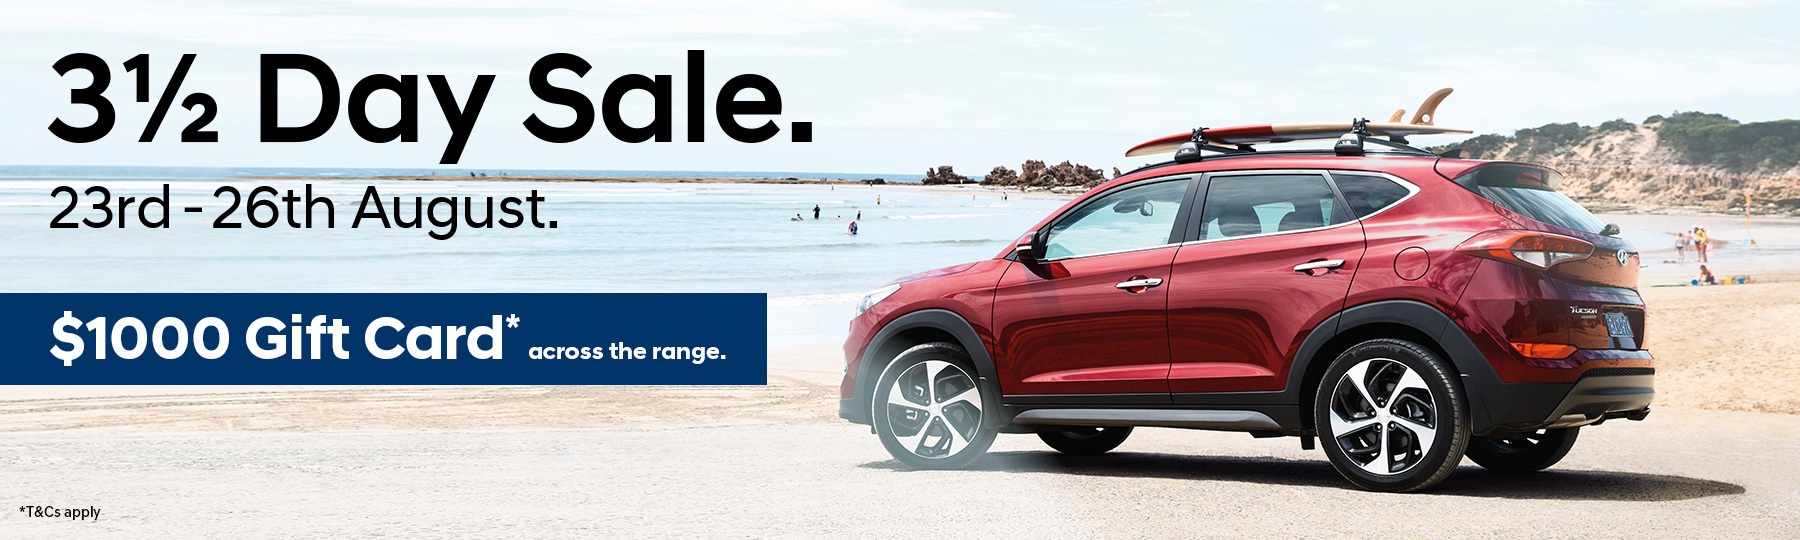 Hyundai 3 Day Sale